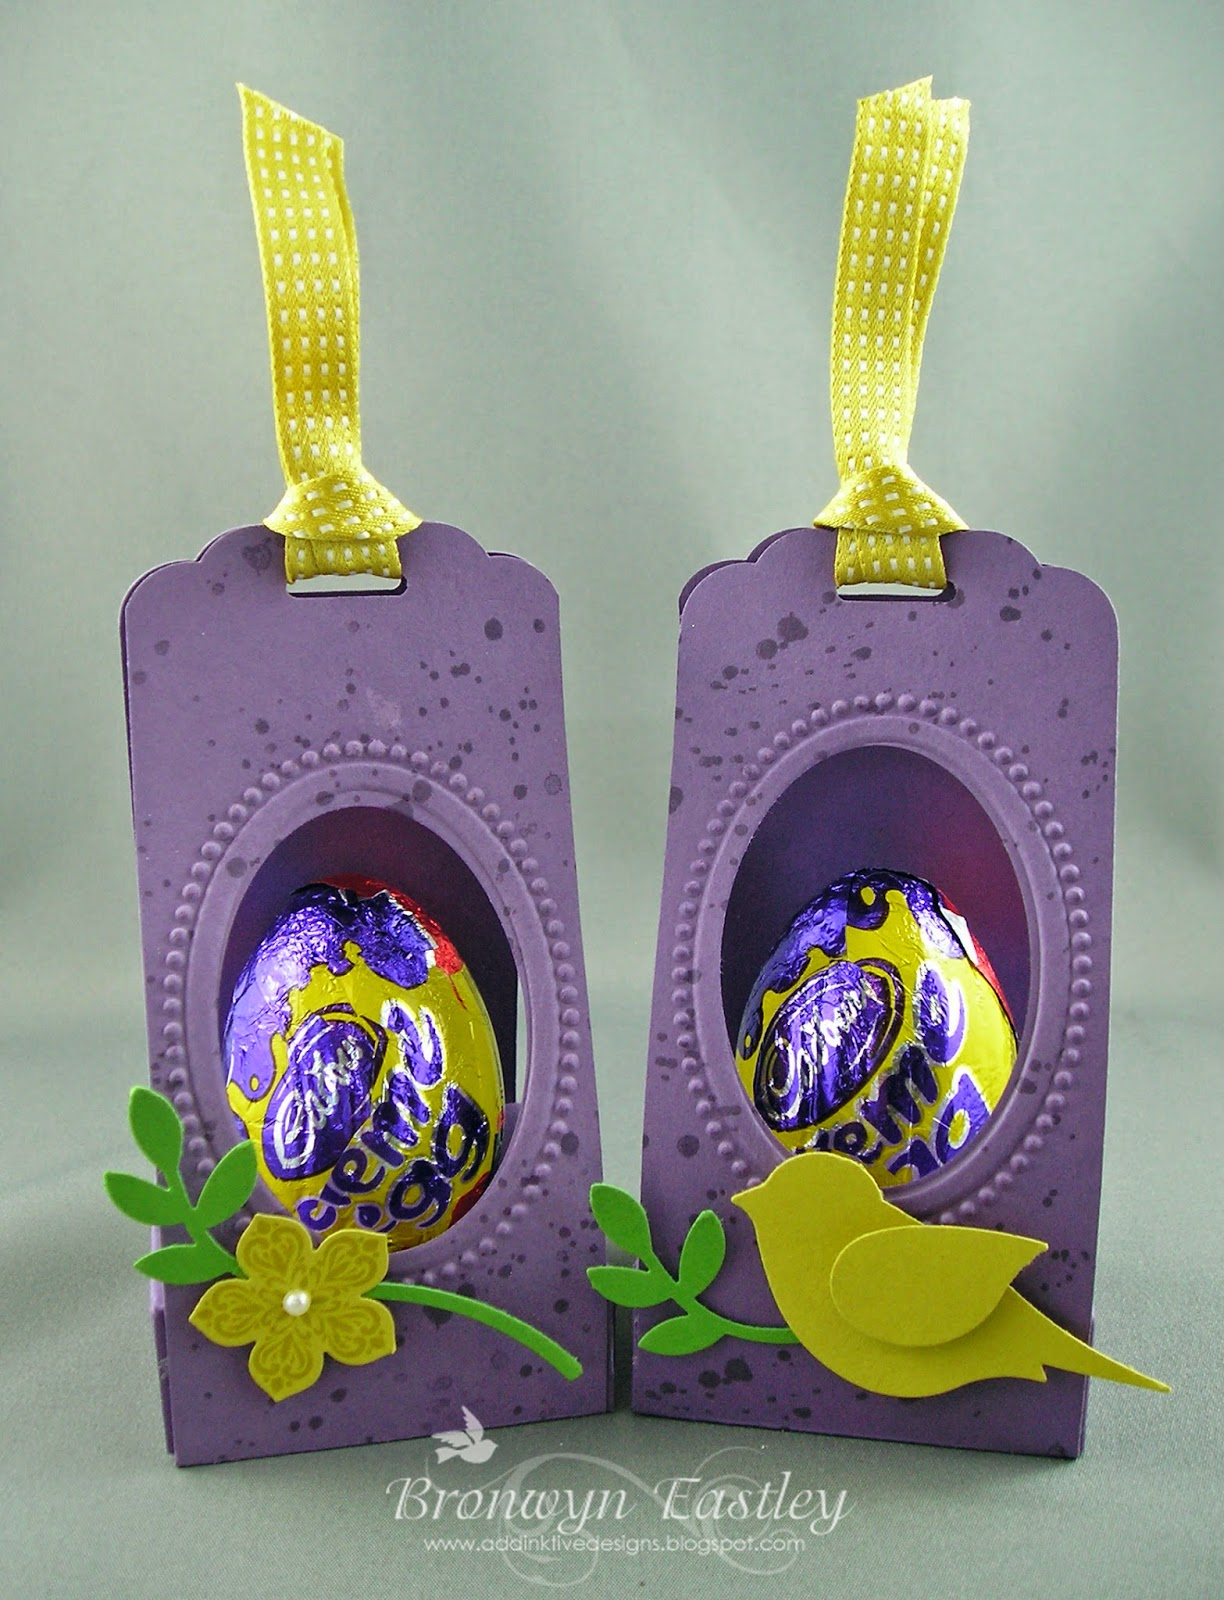 Addinktive designs at blogger easter egg throne box for Design your own egg boxes